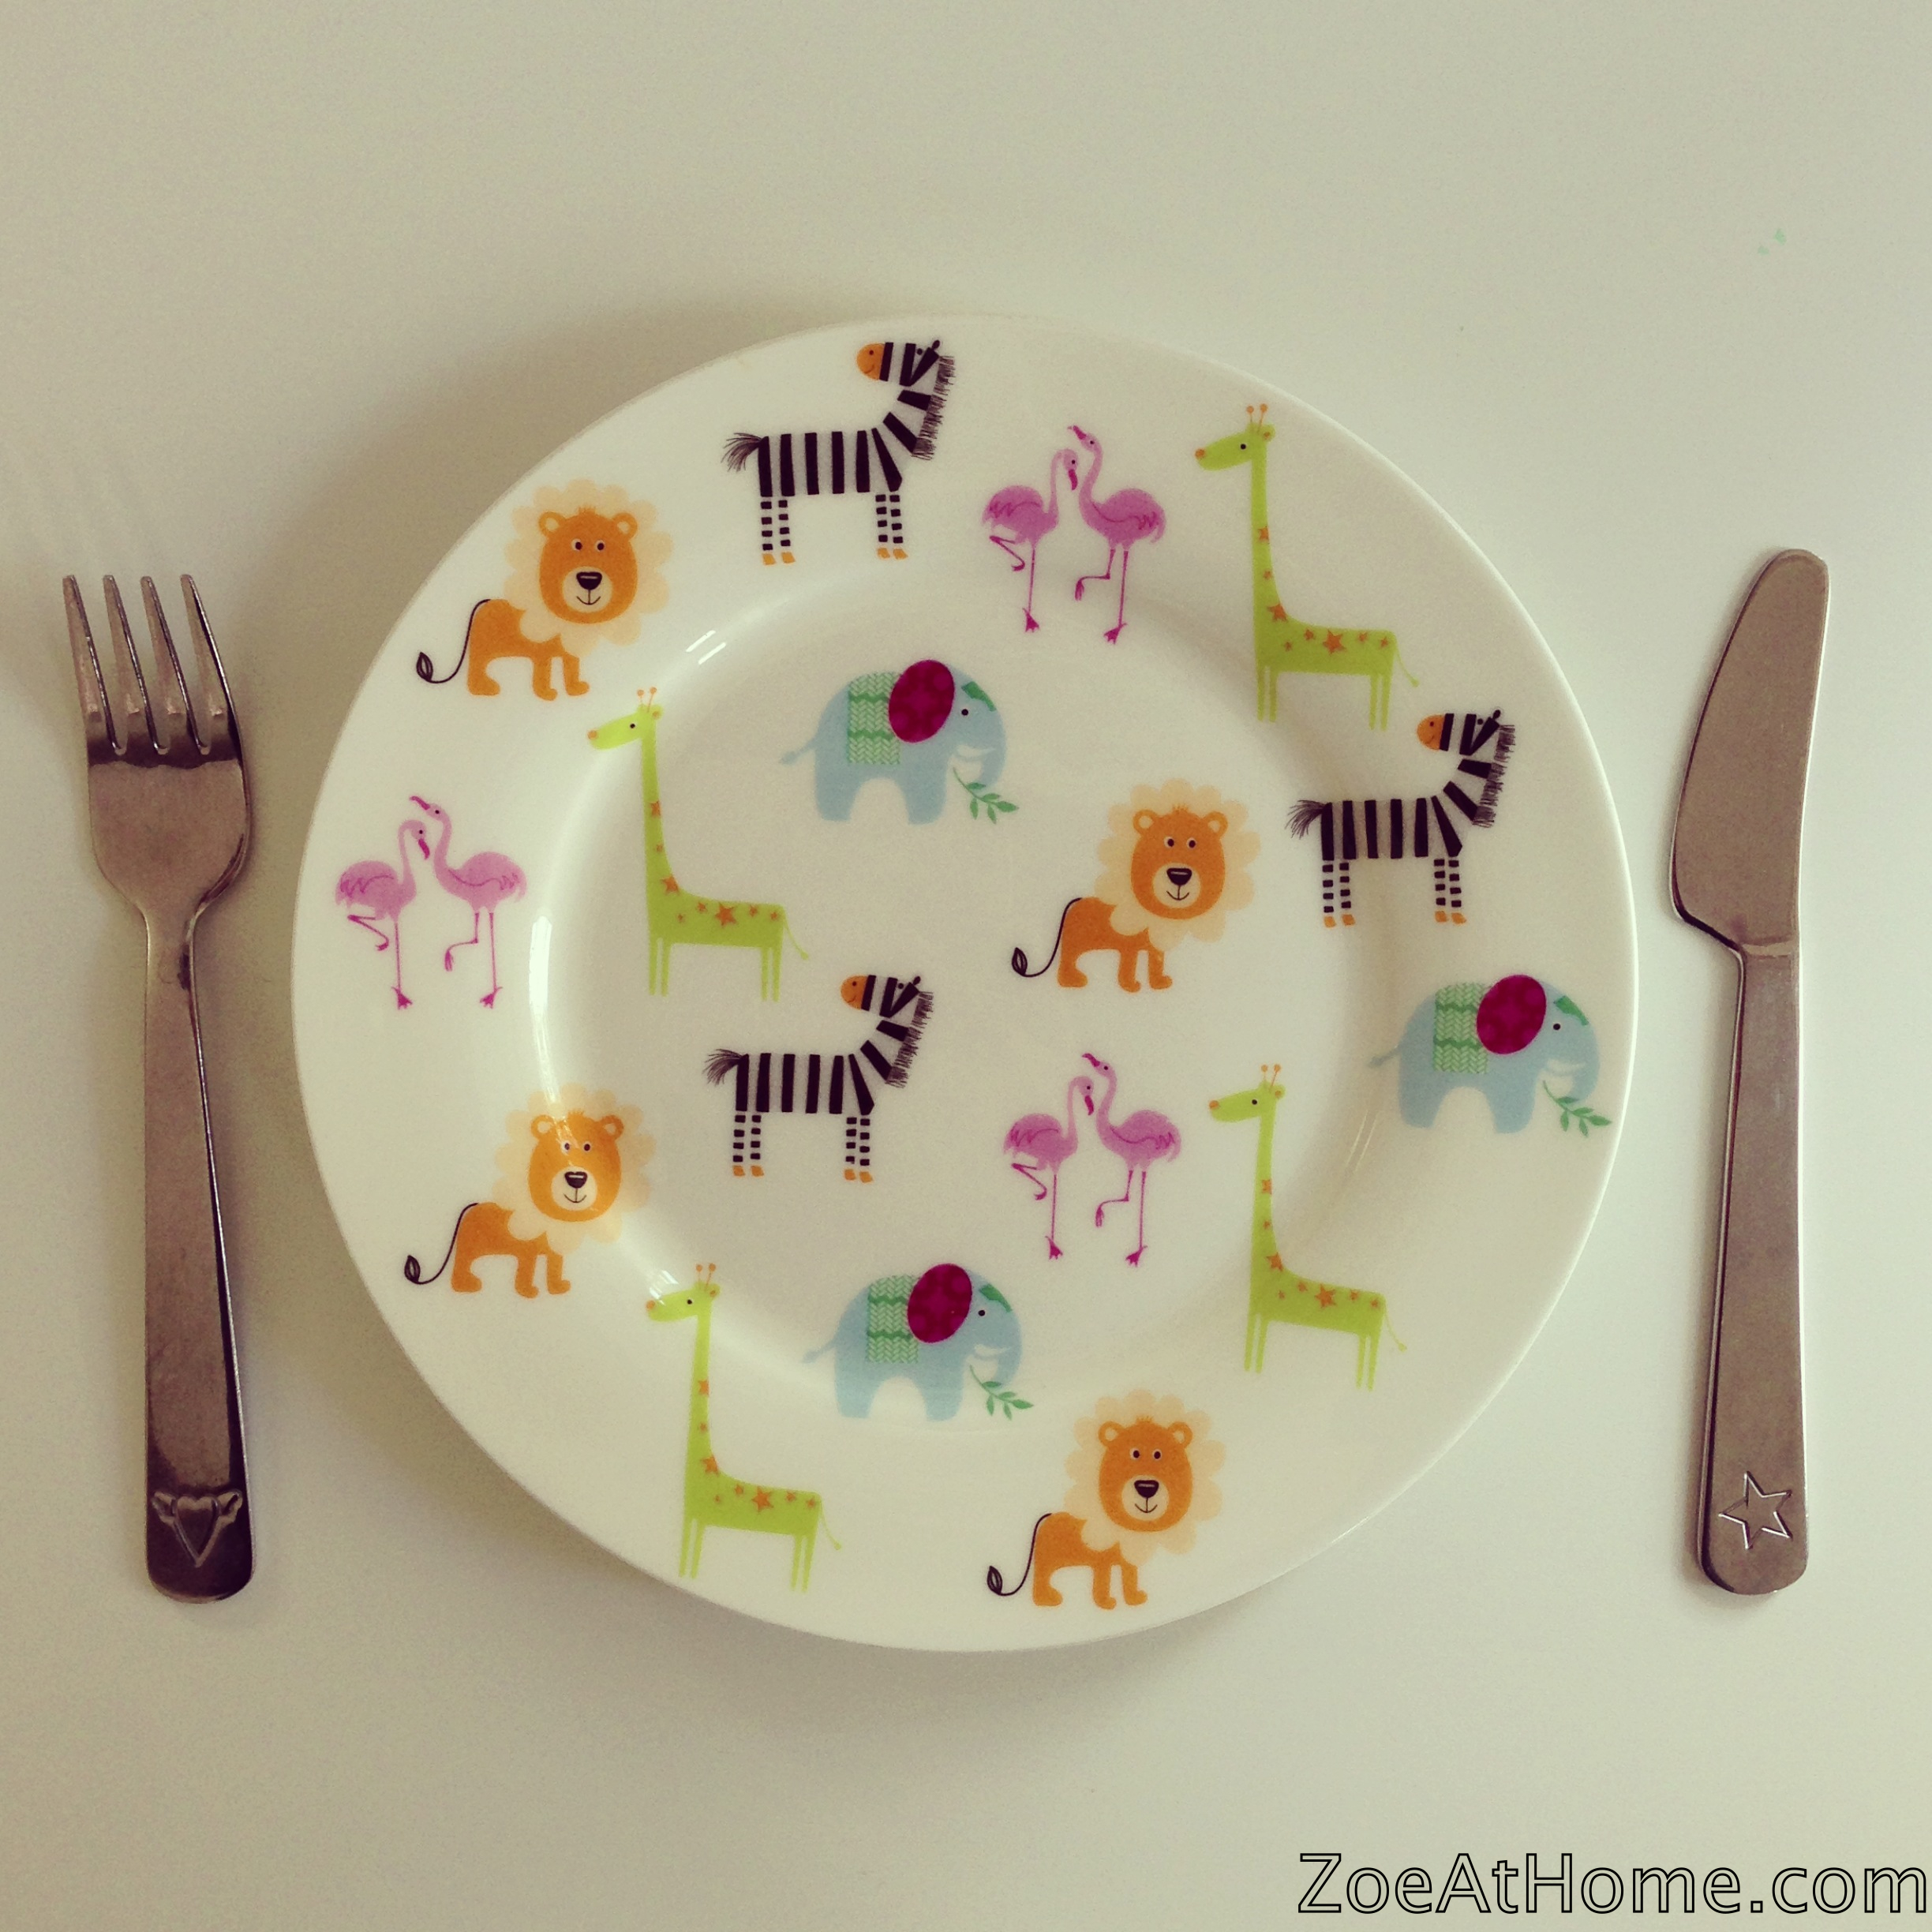 Marvelous Kids Plate And Cutlery ZoeAtHome.com